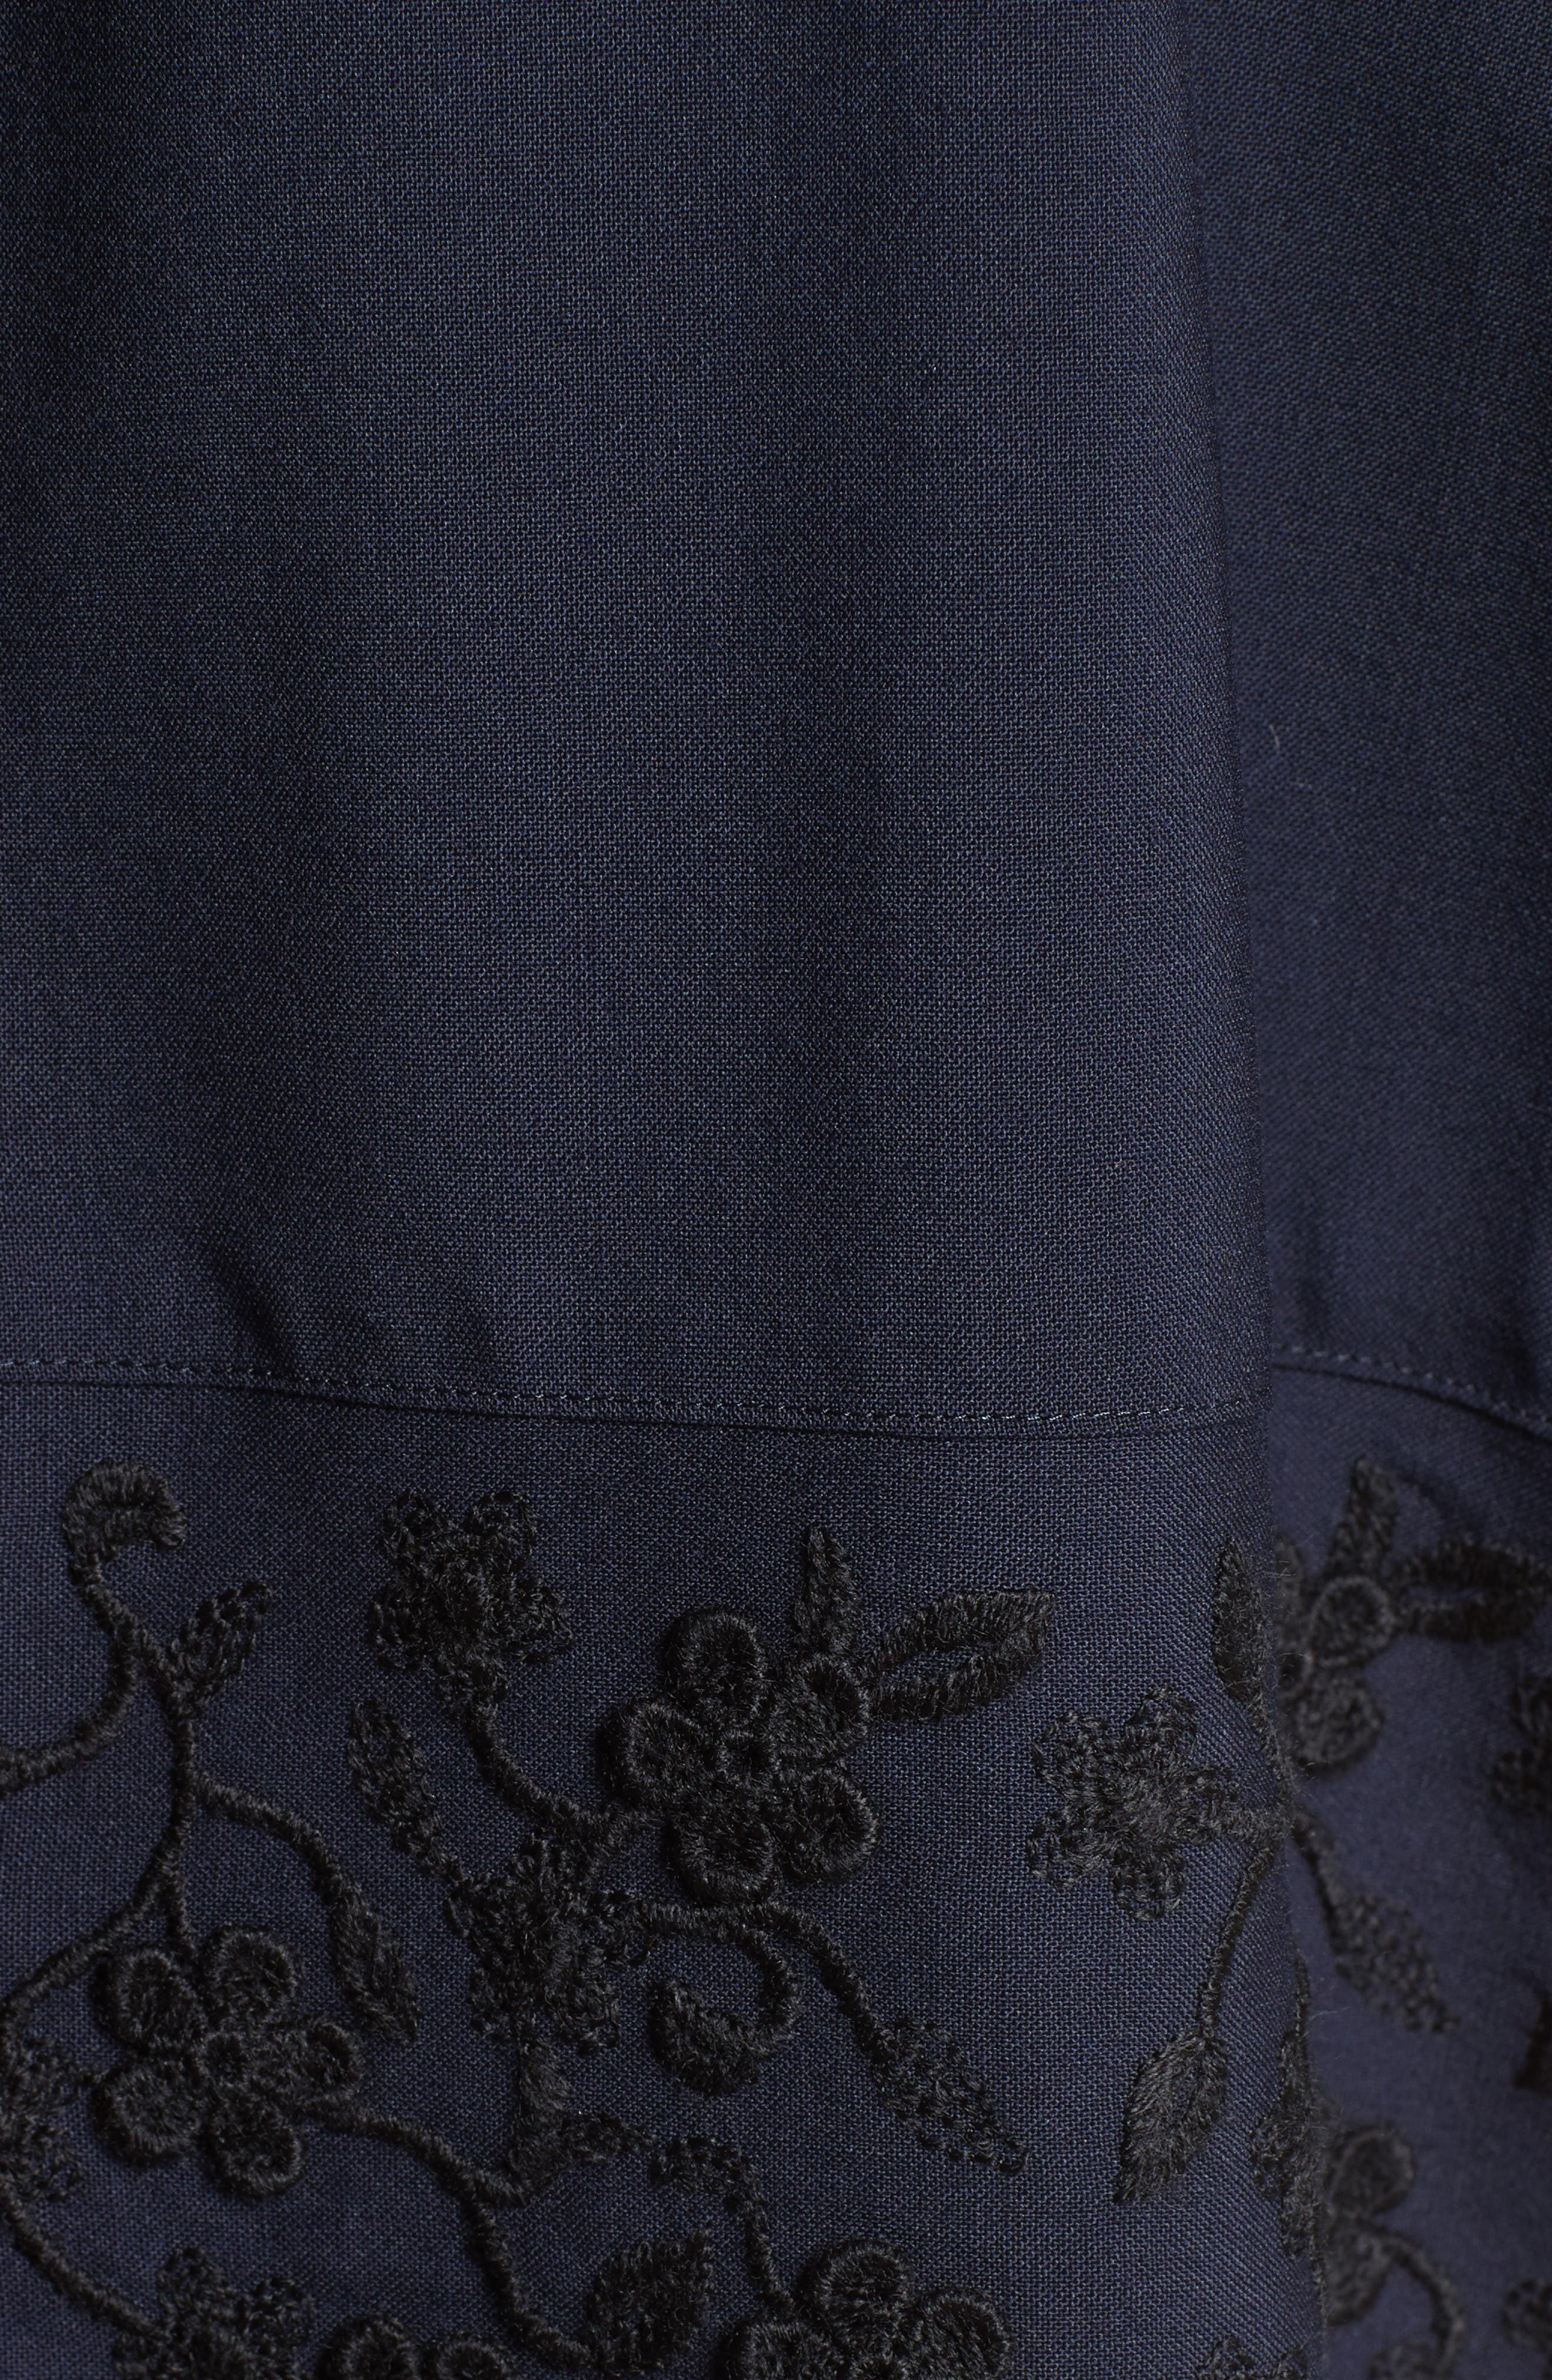 Floral Embroidered Wool Blouse,                             Alternate thumbnail 3, color,                             Navy Black